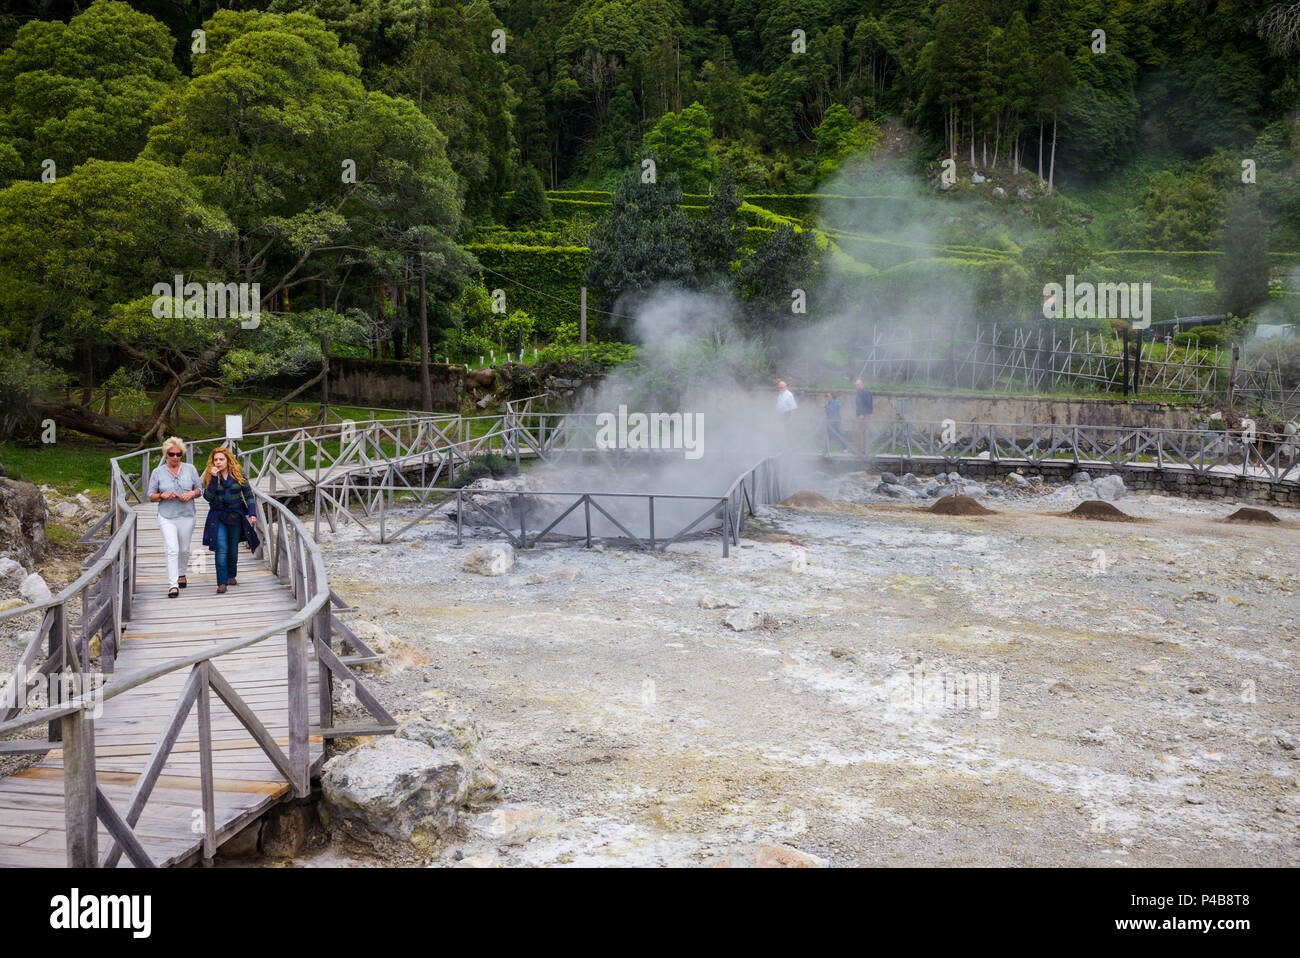 Portugal, Azores, Sao Miguel Island, Furnas, Lago das Furnas lake, lakeside caldeiras, volcanic activity - Stock Image